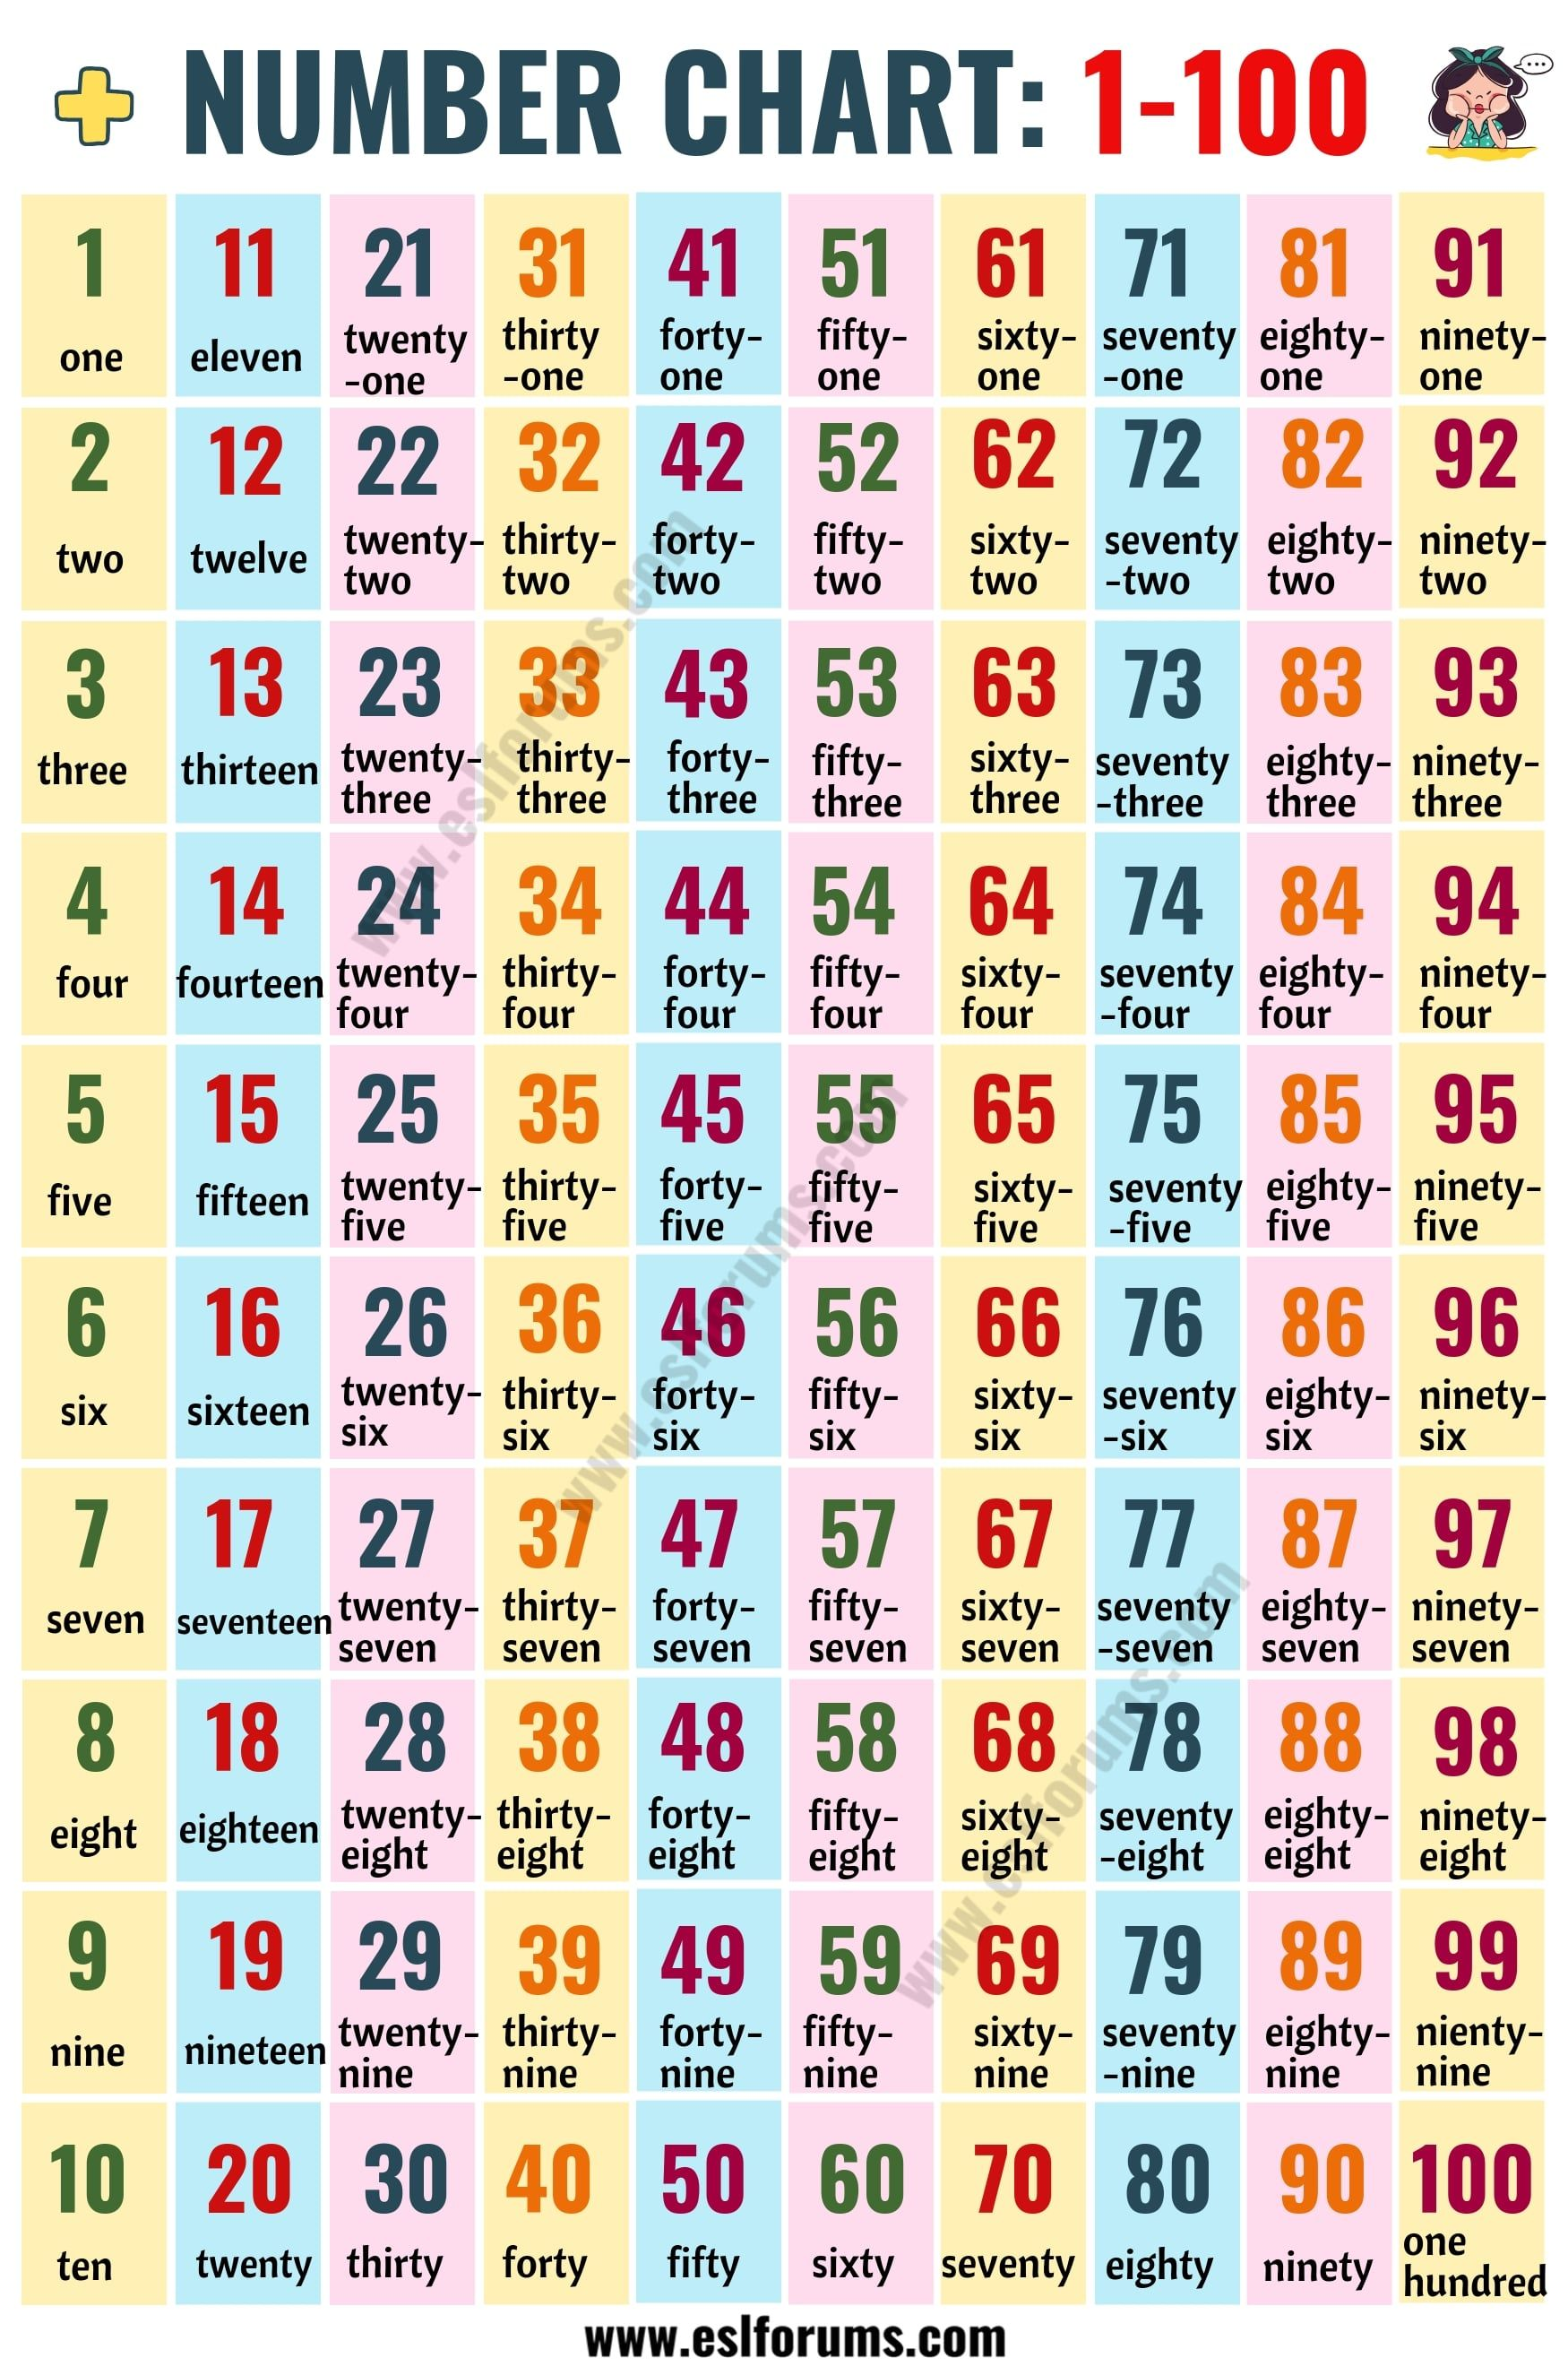 Hundreds Chart Number Chart 1 100 In English Esl Forums Number Chart Number Words Worksheets Hundreds Chart